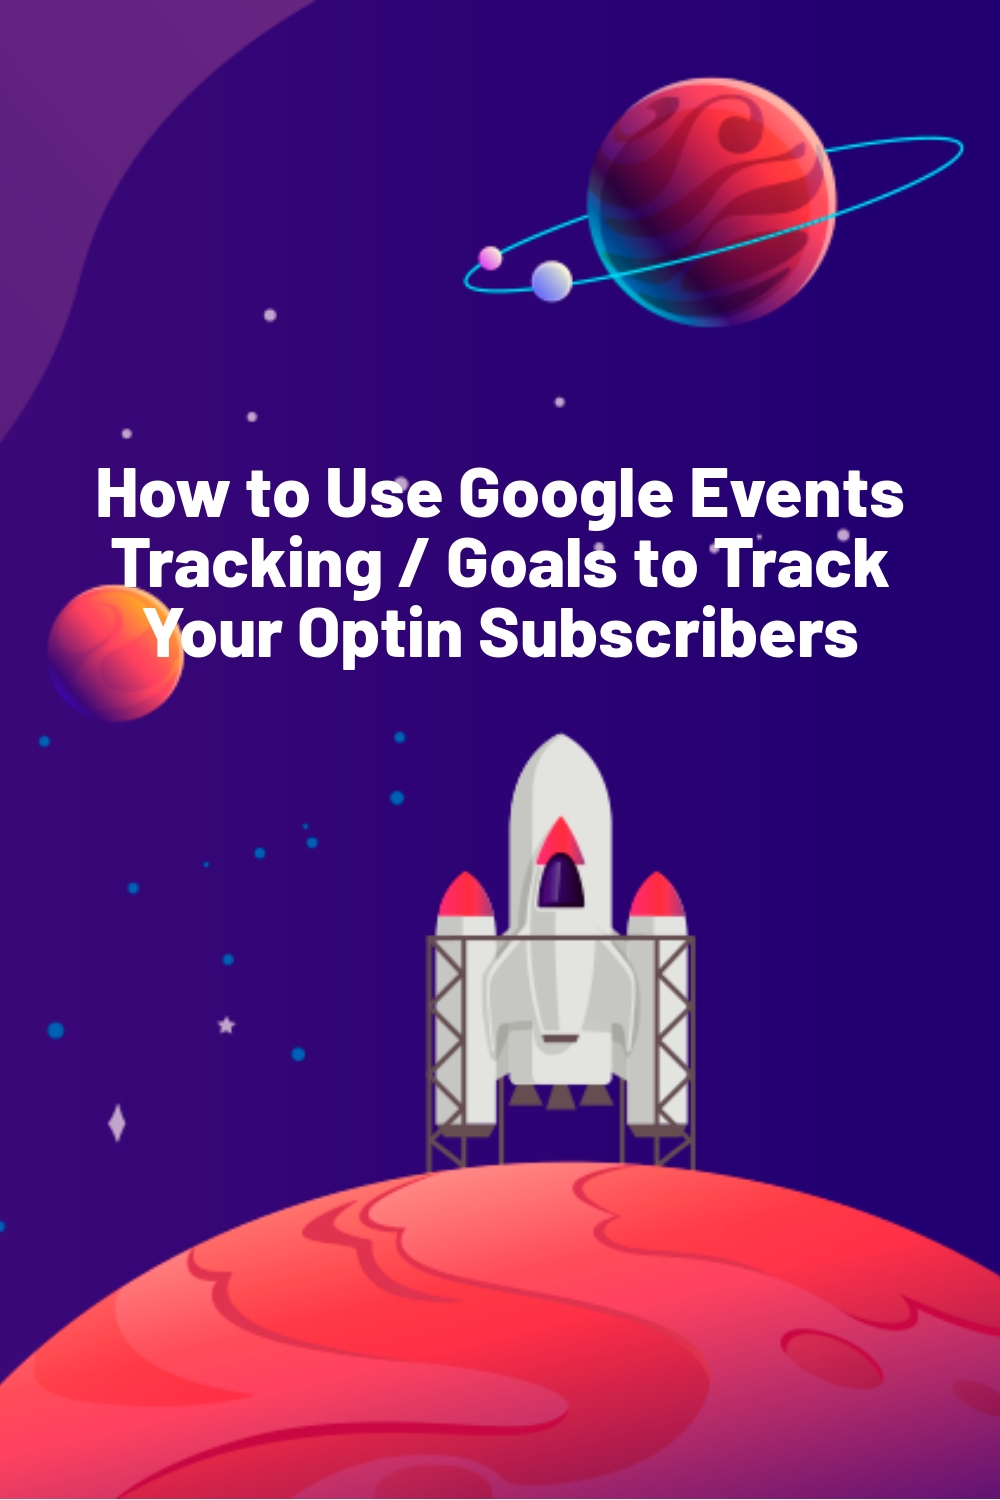 How to Use Google Events Tracking / Goals to Track Your Optin Subscribers